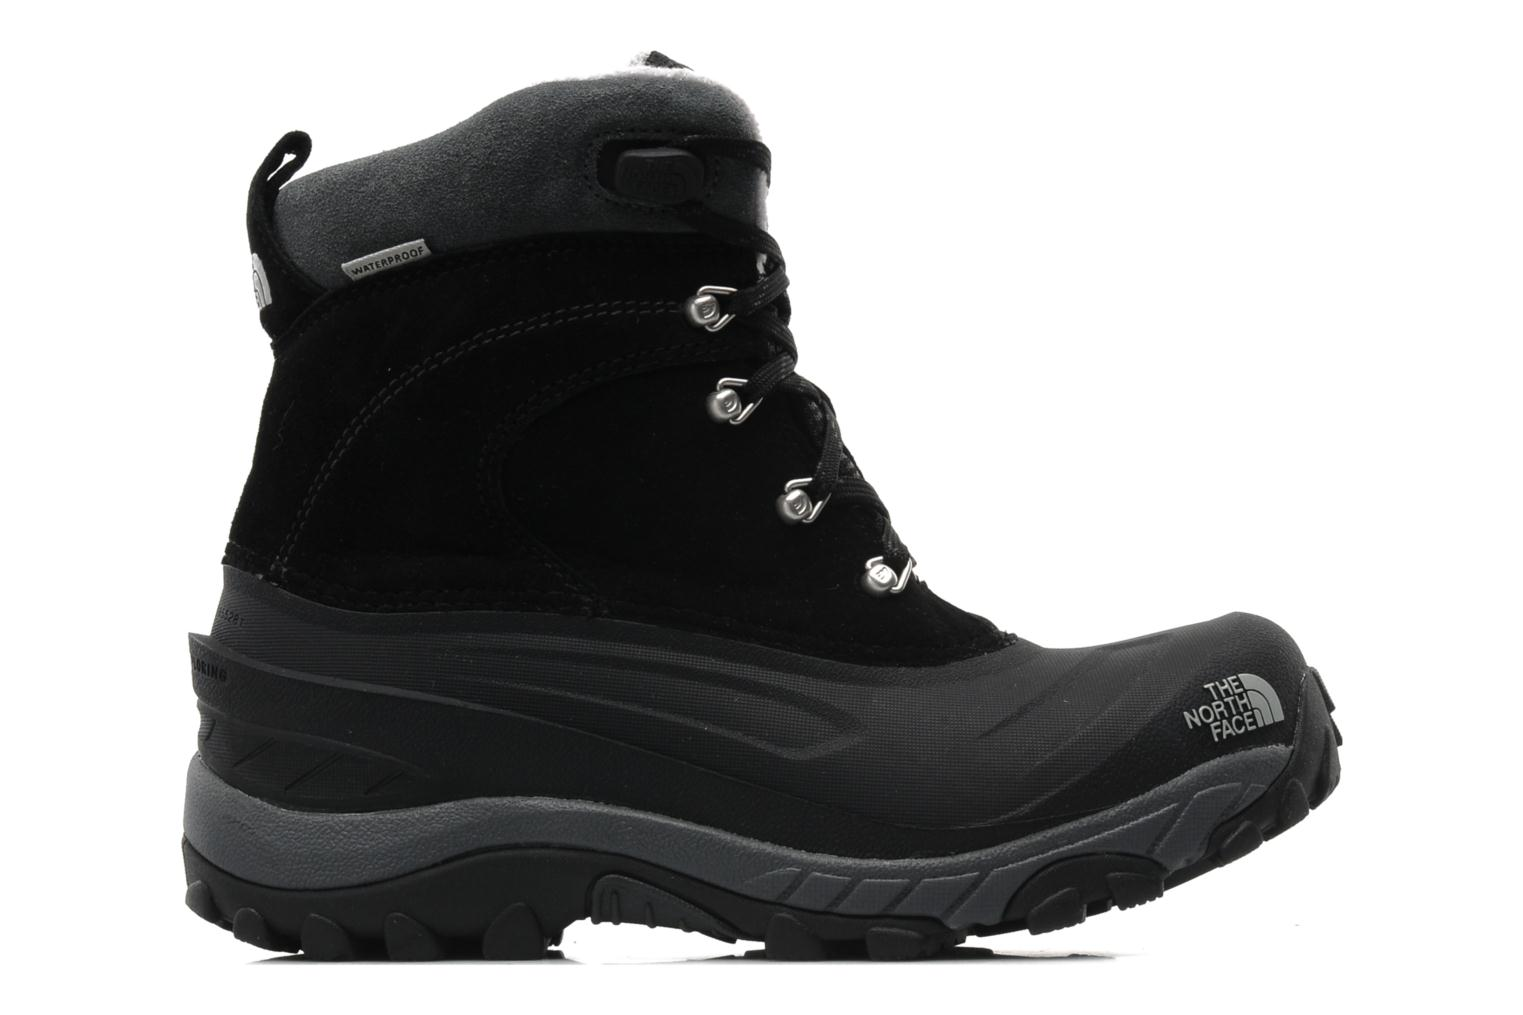 Sportschoenen The North Face M Chilkat II Zwart achterkant